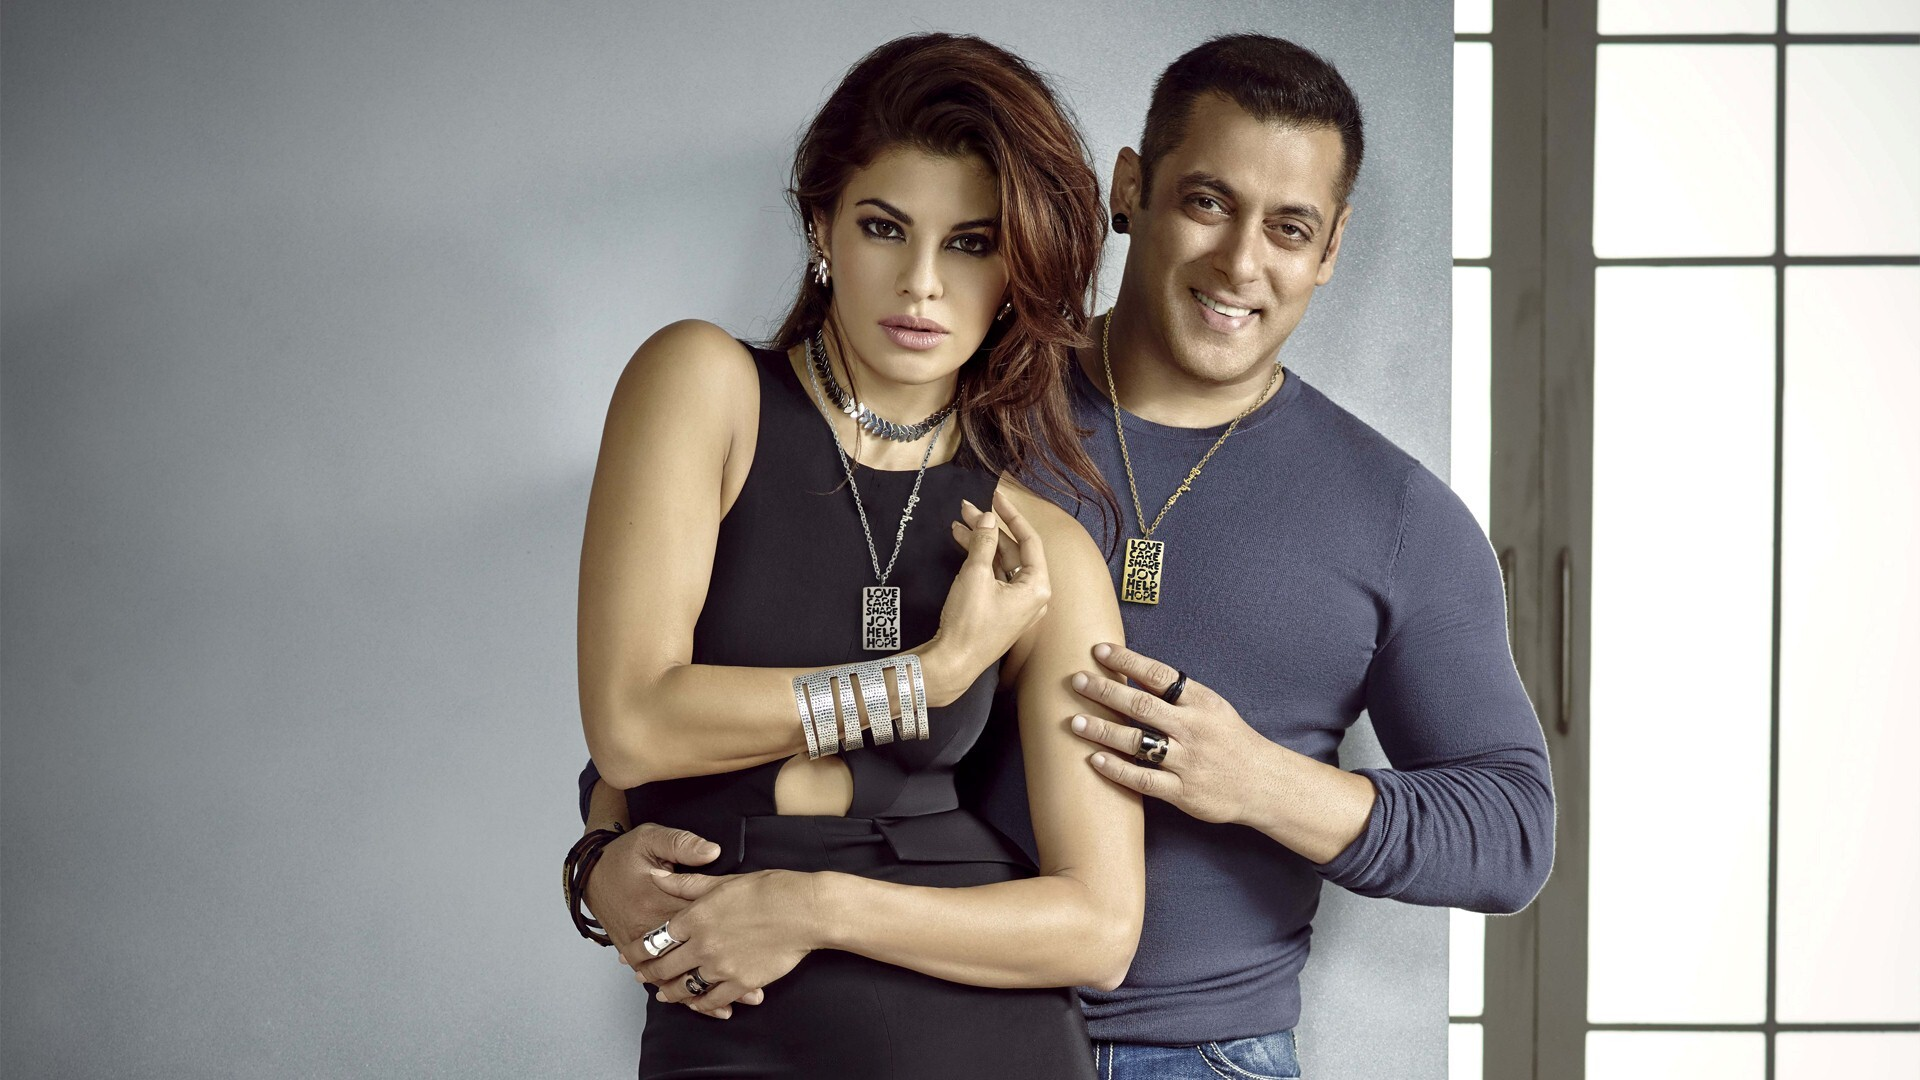 Salman Khan And Jacqueline Fernandez Photo Hd Wallpapers